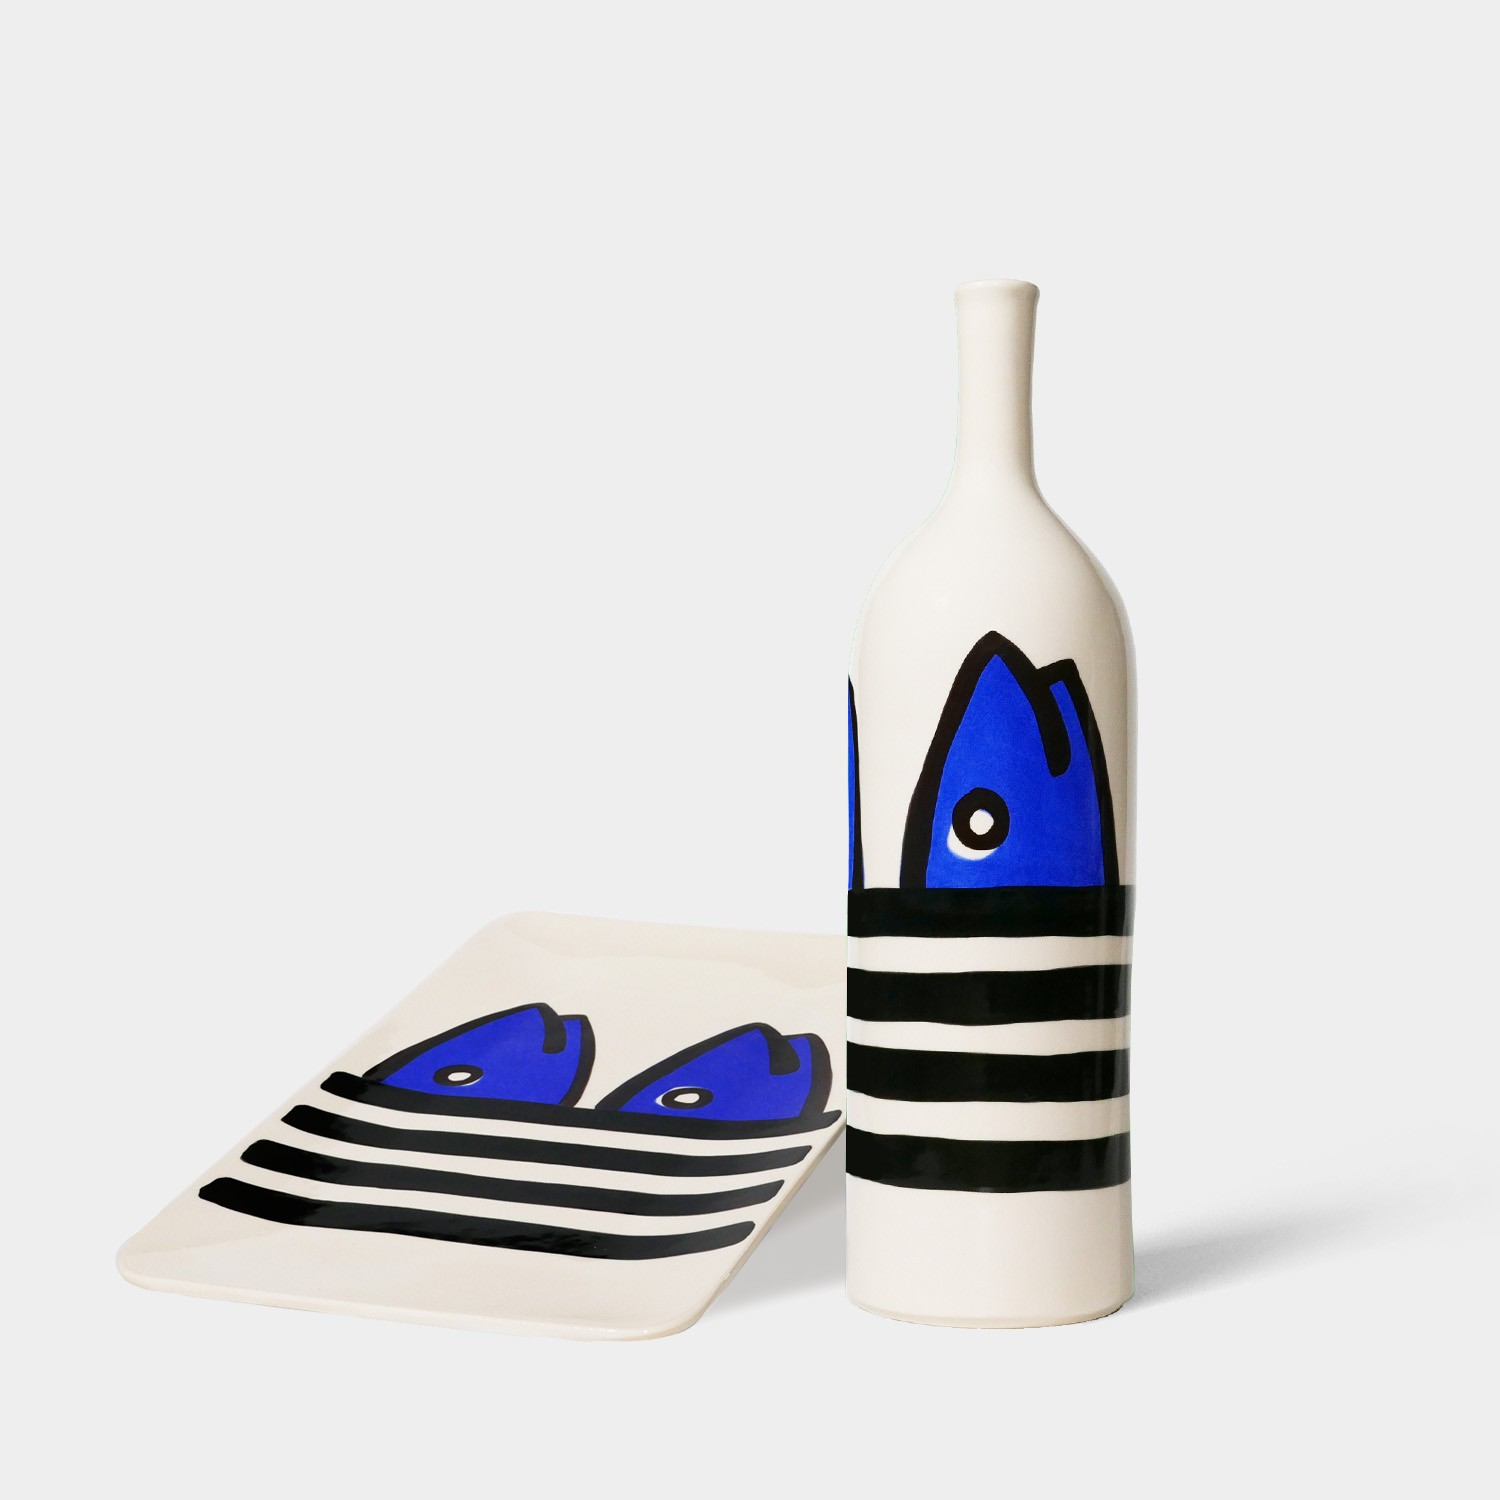 Handmade Ceramic Bottle and Tray, Black & Blue